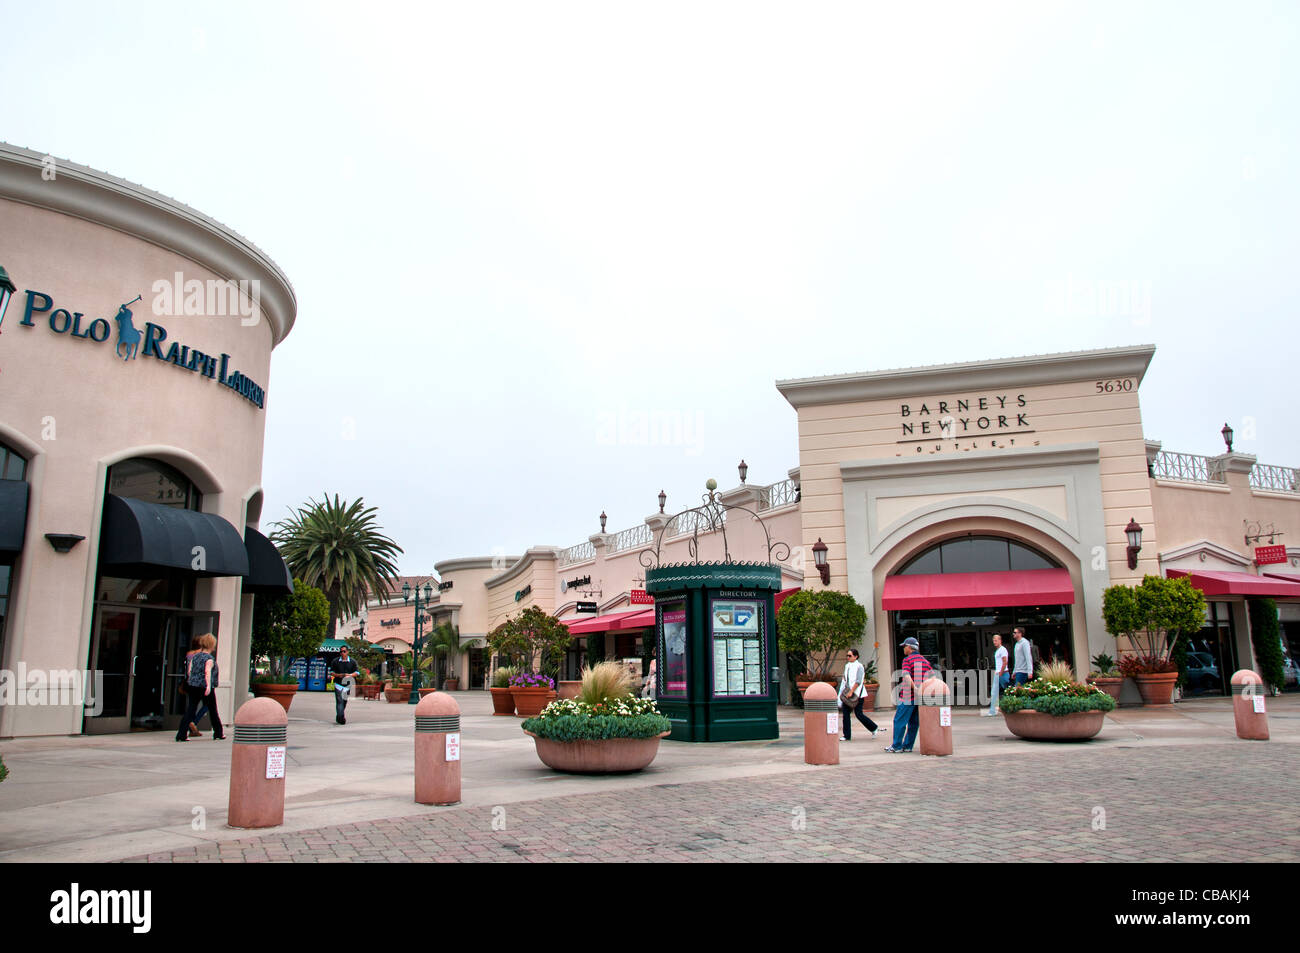 Ralph Lauren Barneys New York Carlsbad Premium Outlets California United States Shopping Mall - Stock Image